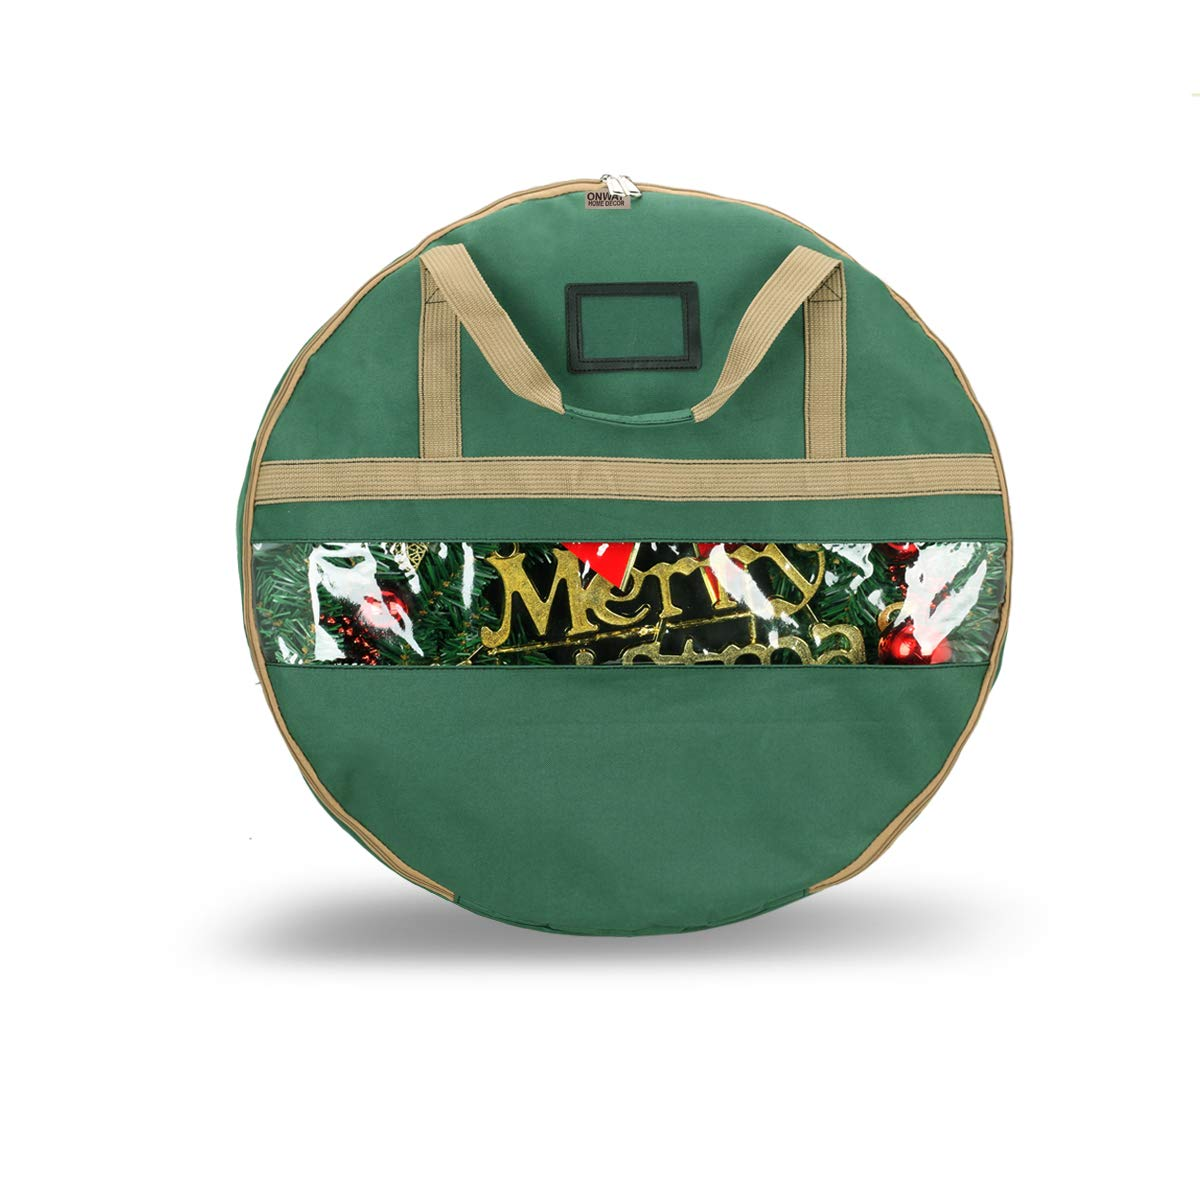 ONWAY Wreath Storage Container Heavy Duty Canvas Wreath Storage Bag for Christmas/Easter/Door/Spring/Winter/Welcome/Valentines Day Wreath with Clear Window and Transparent Card Slot (24 inch Green) by ONWAY